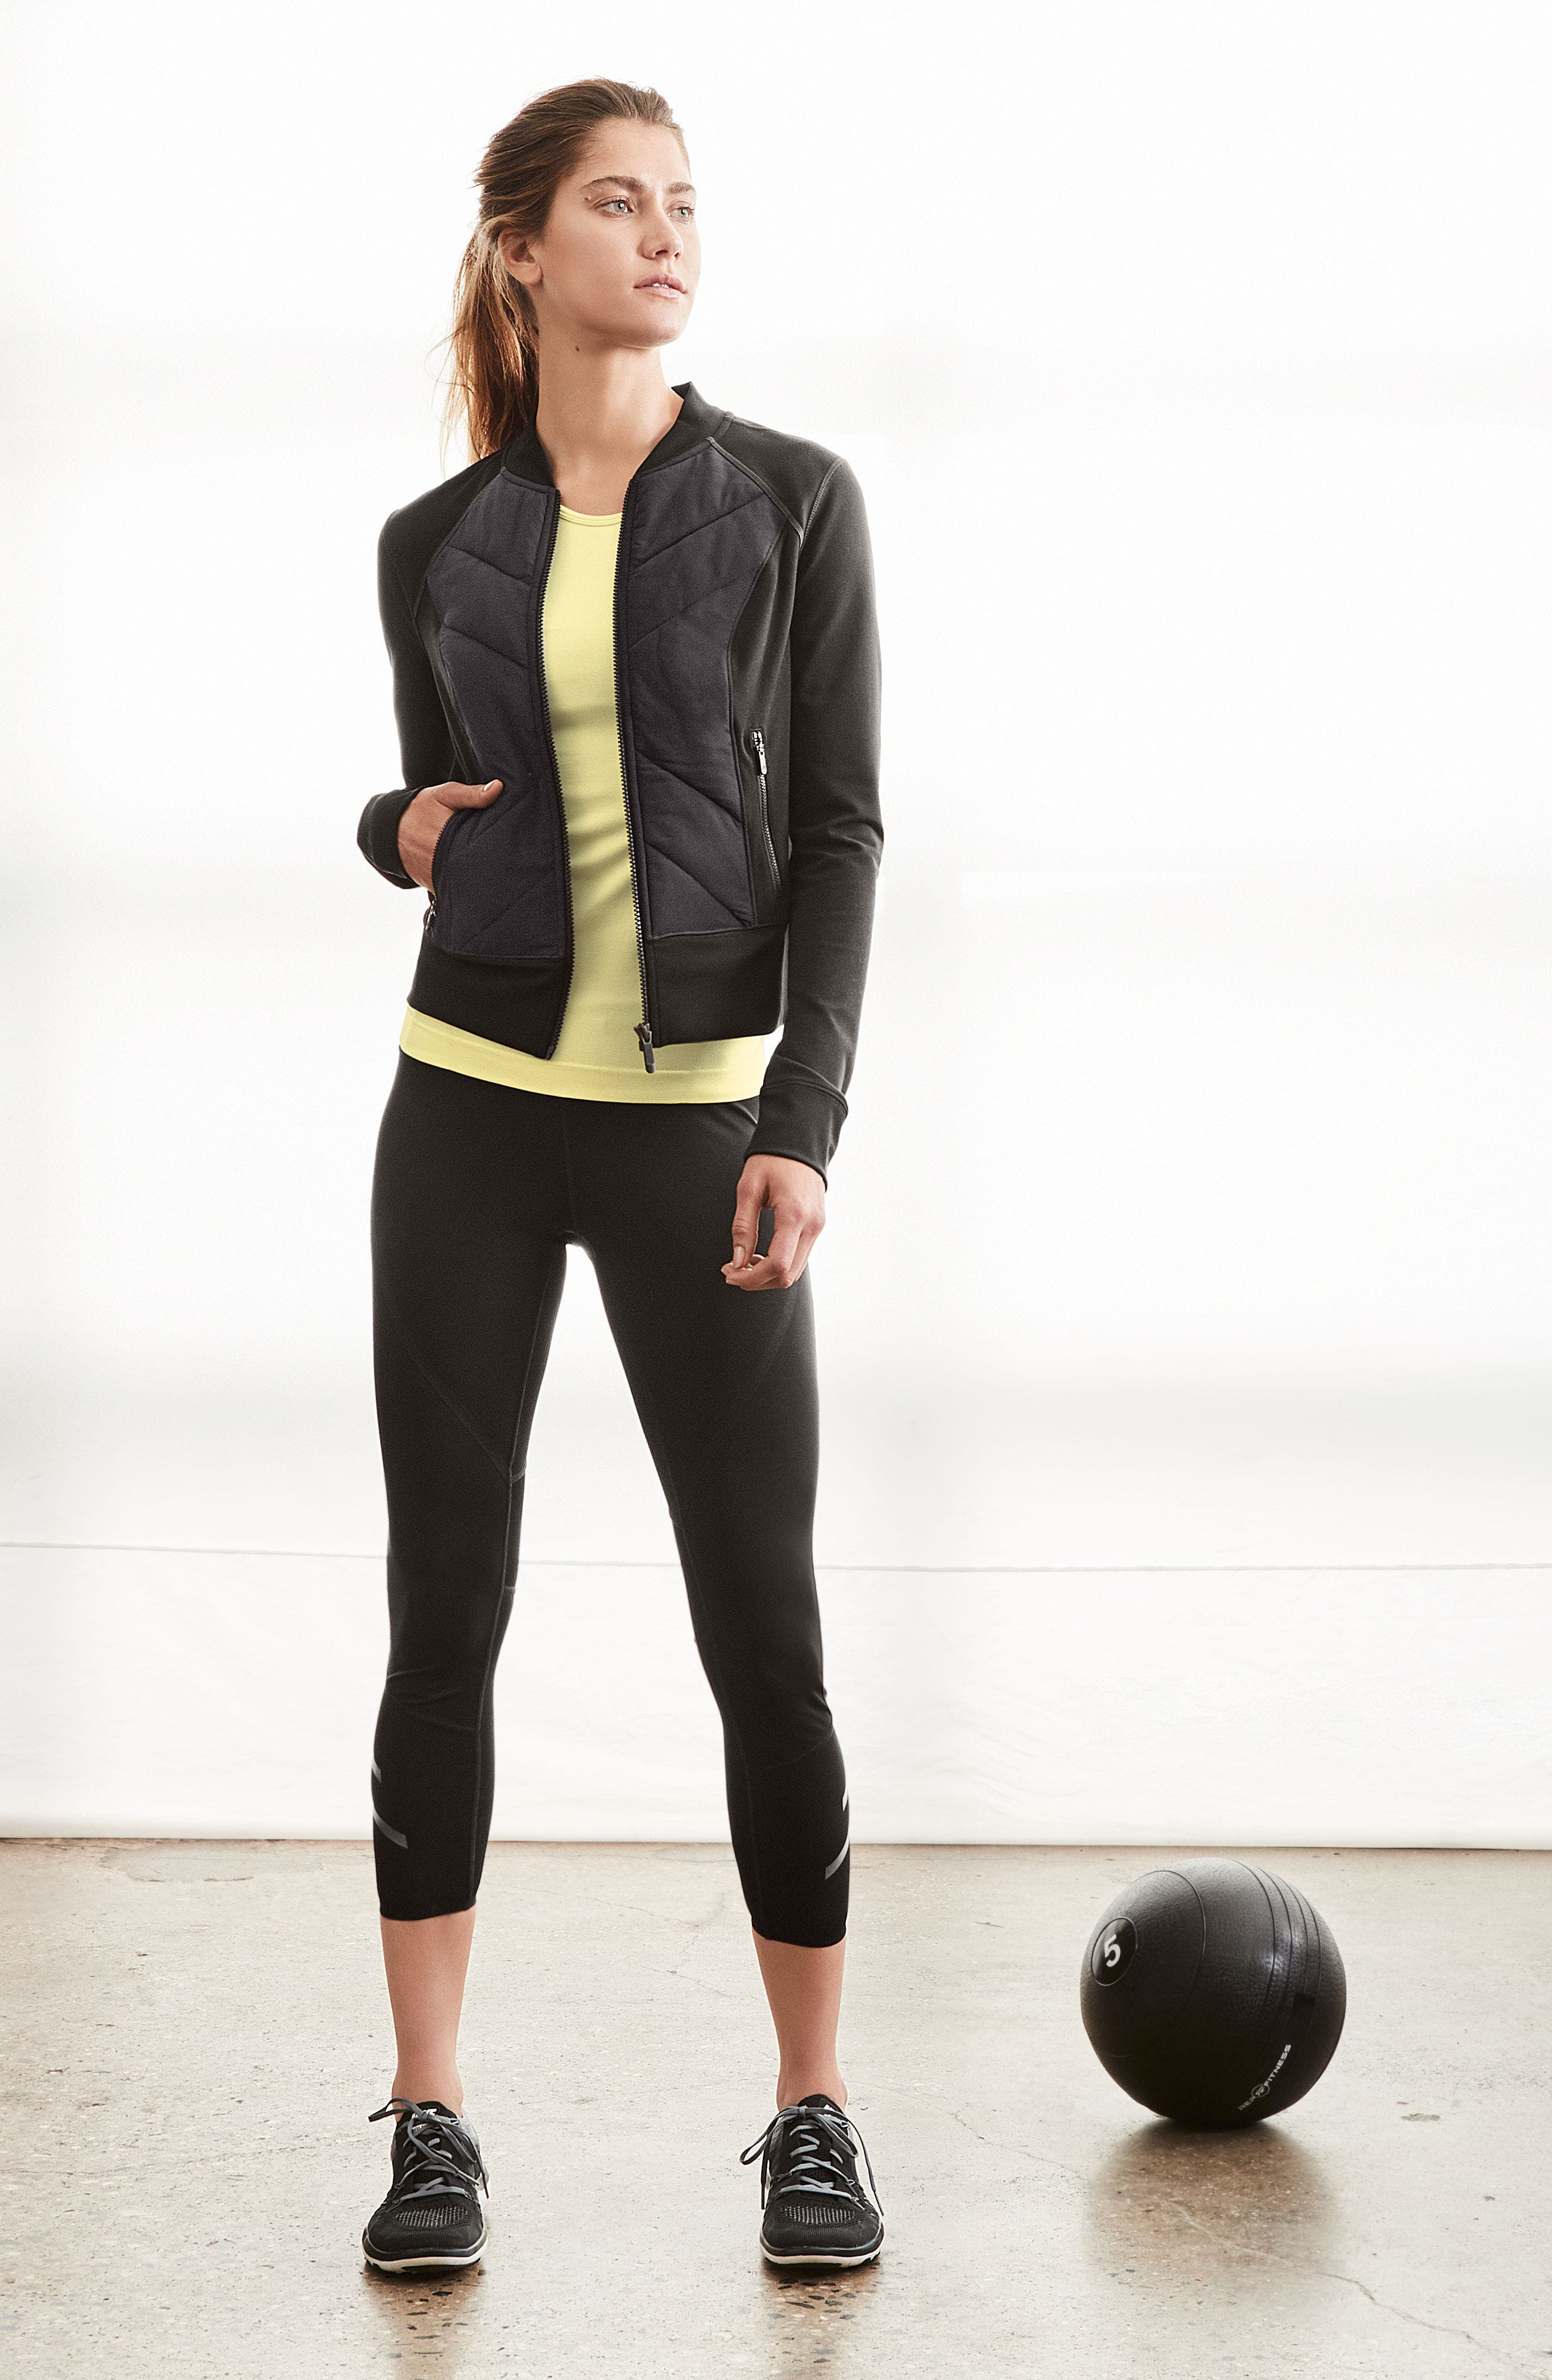 Zella Jacket, Tank & Sports Bra Outfit with Accessories